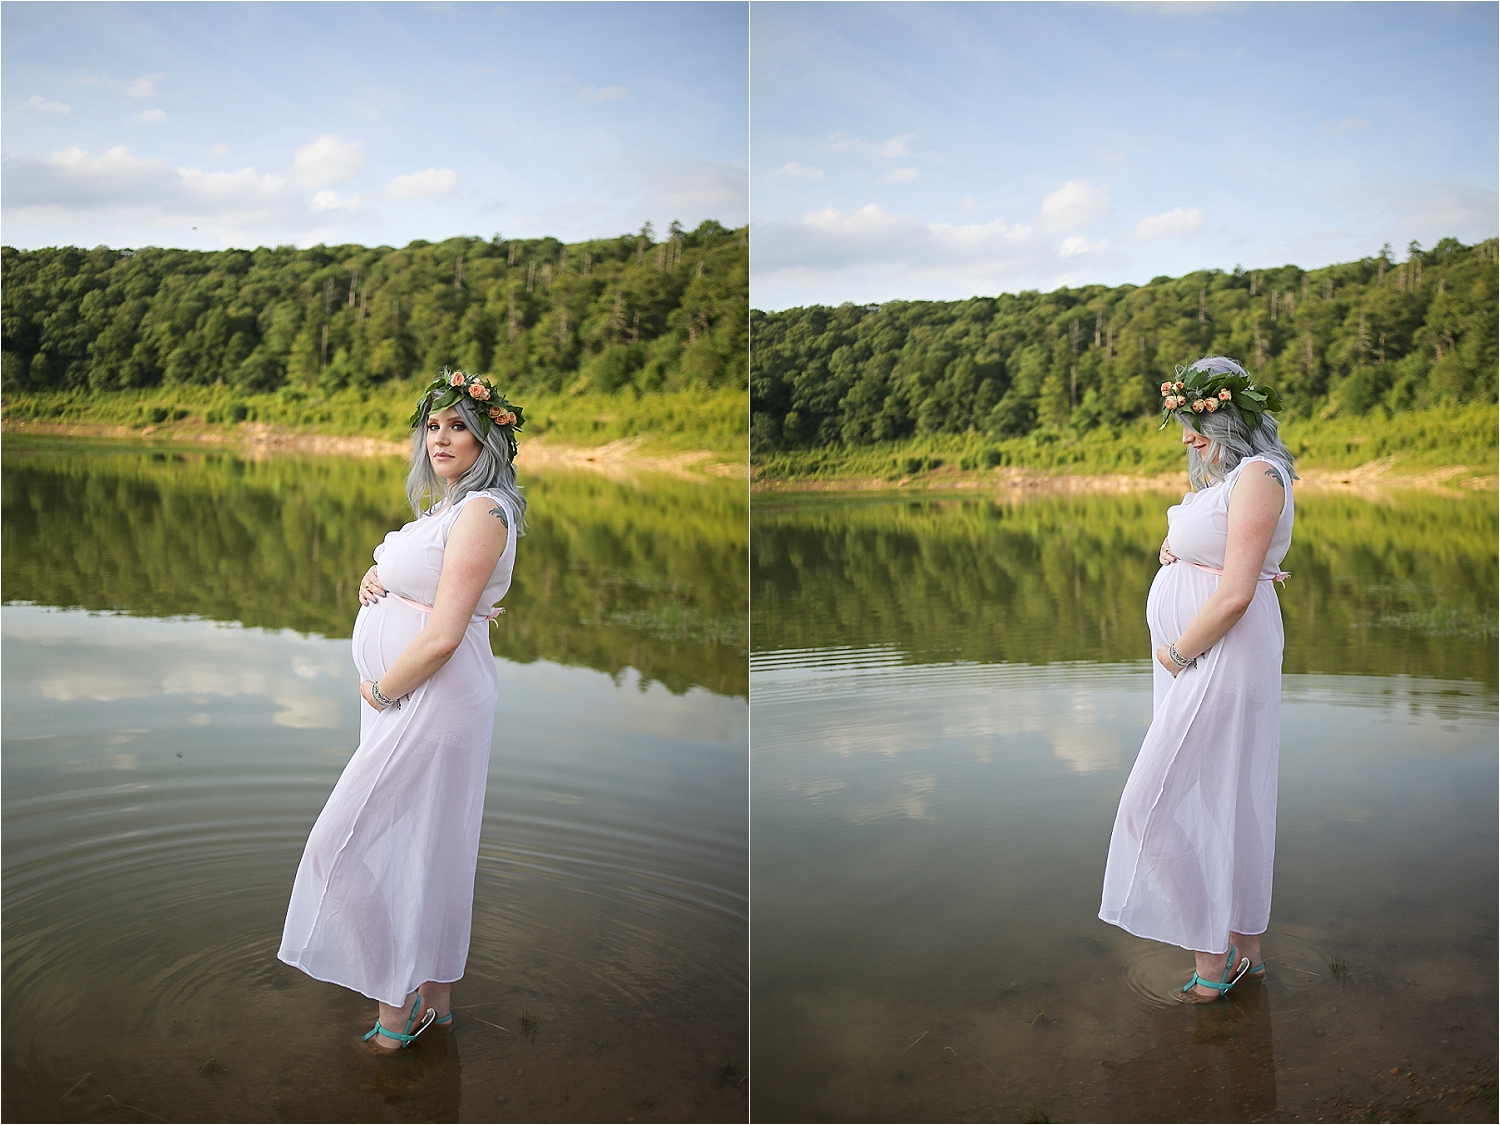 Blacksburg-Maternity-Portrait-Photographer-0016.jpg